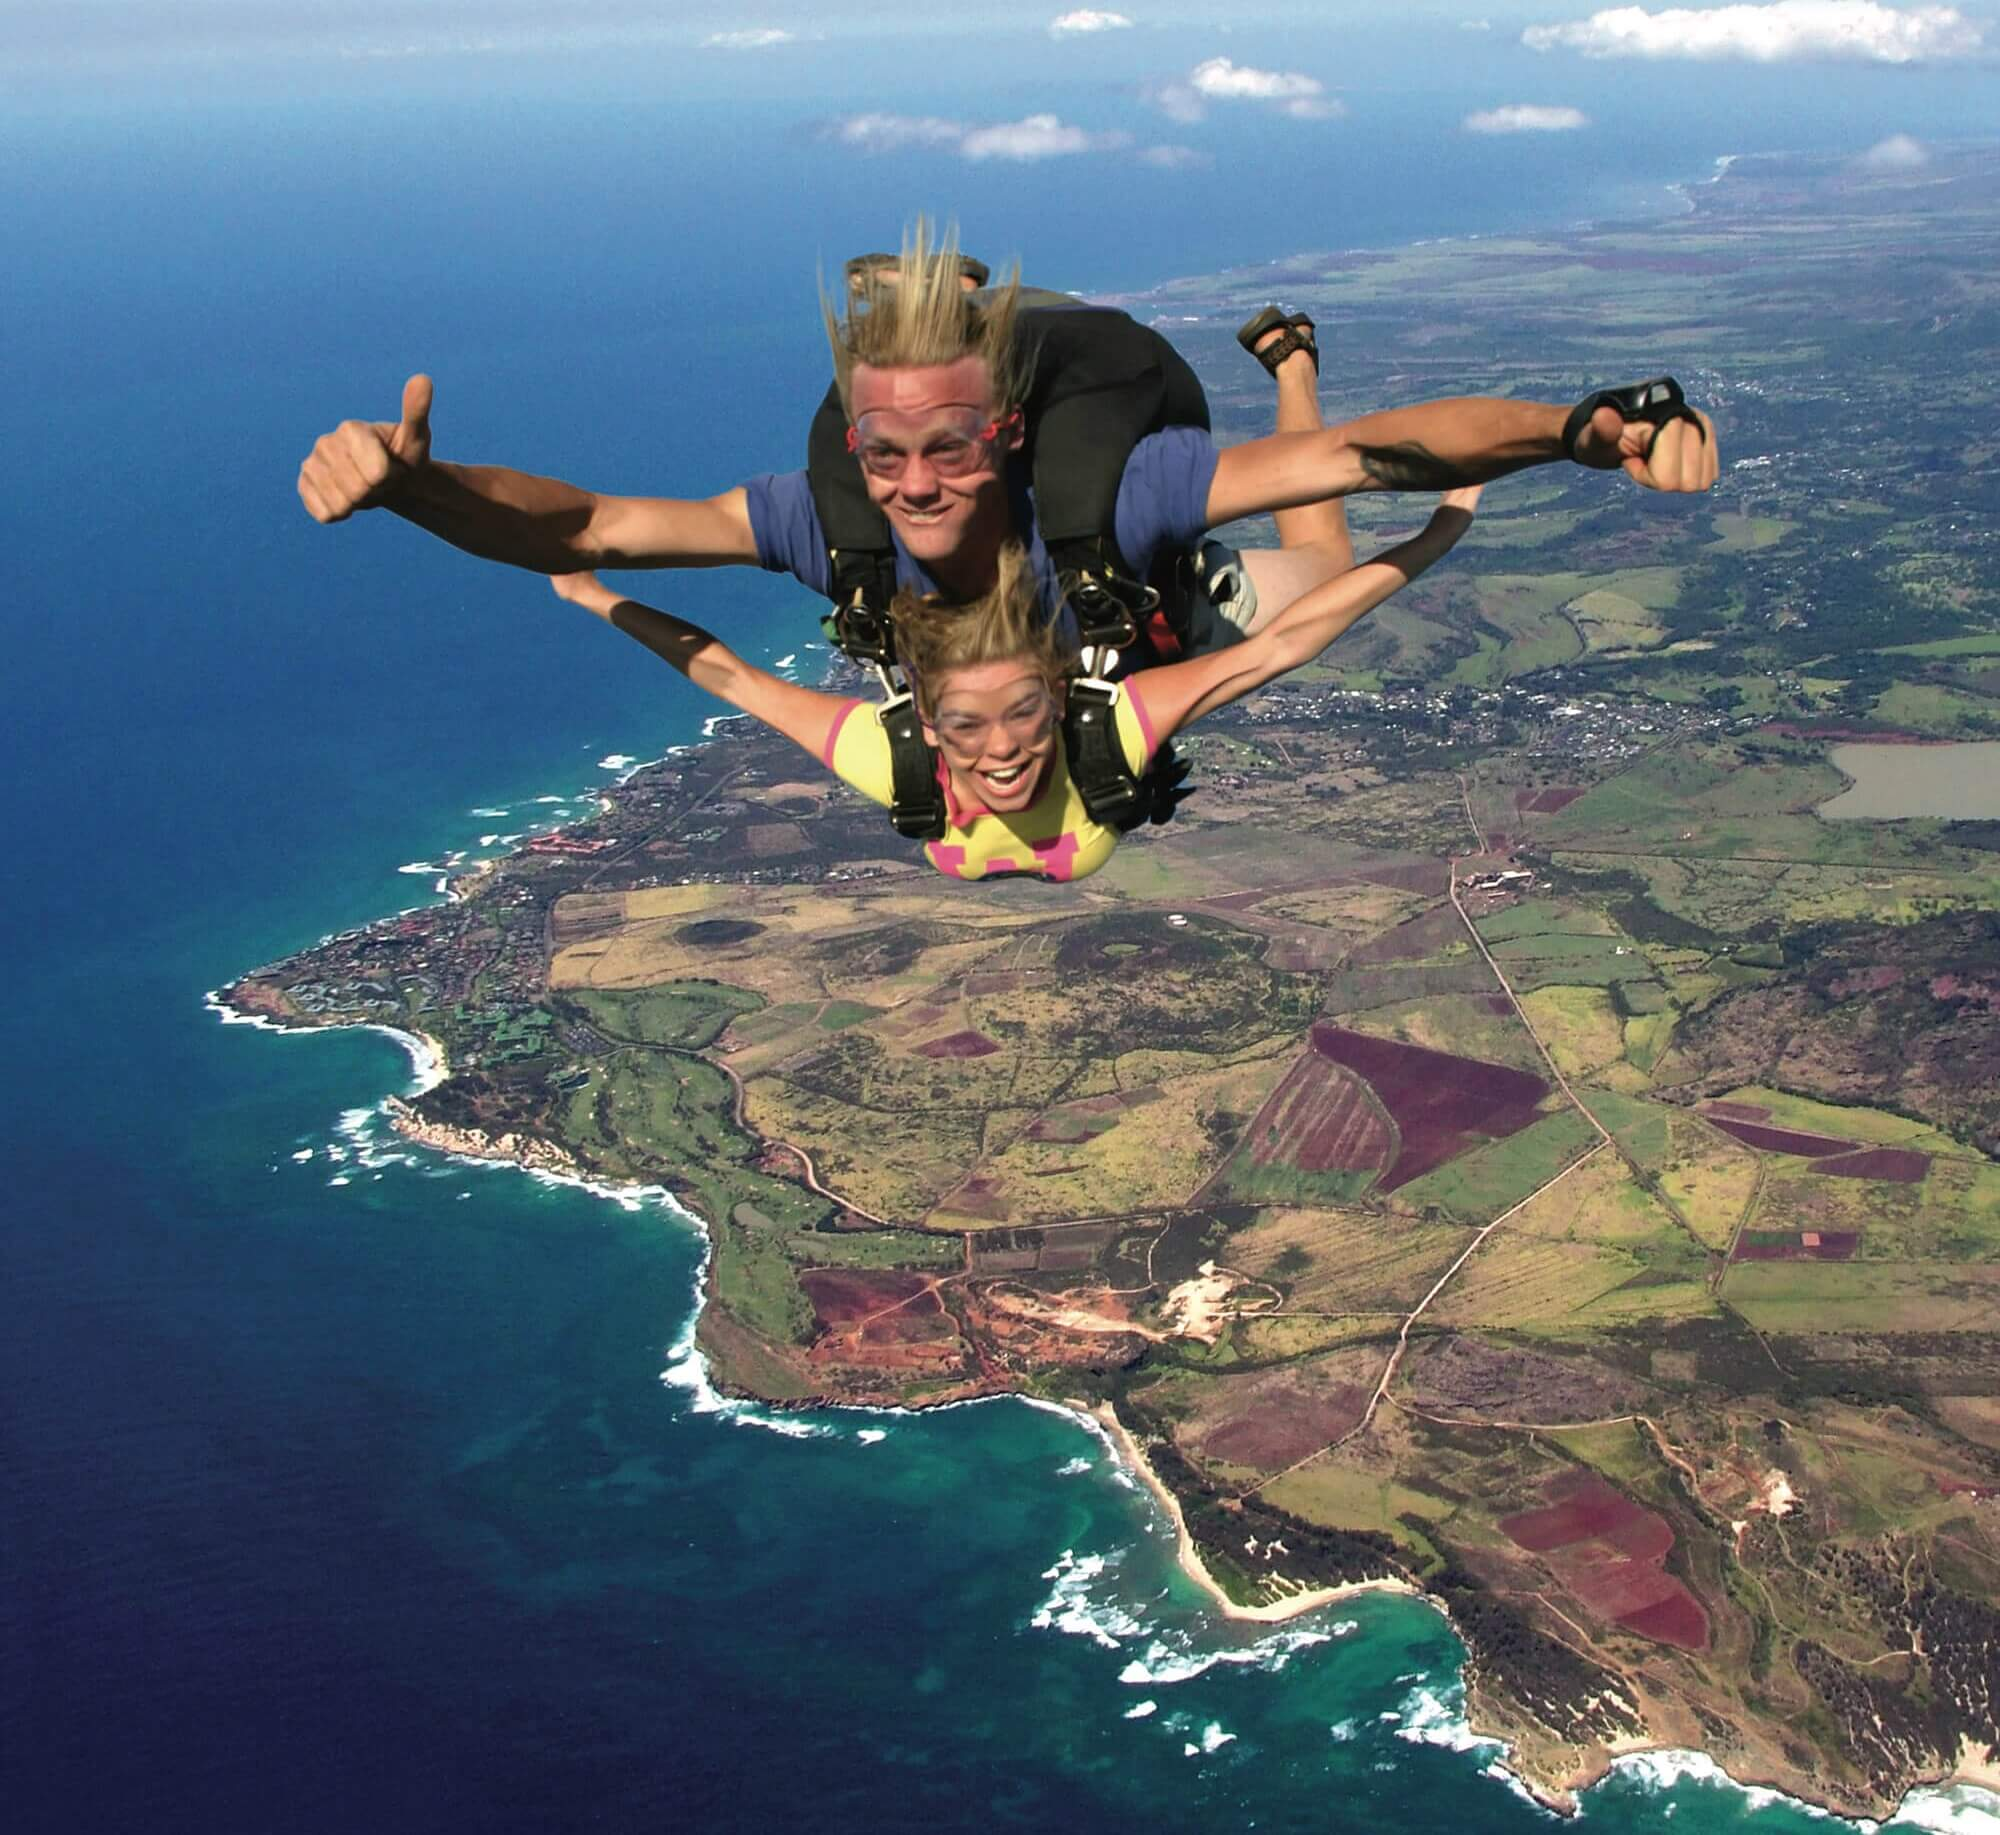 Skydive Over Kauai Island | Skydive Kauai | 3 Thrills For